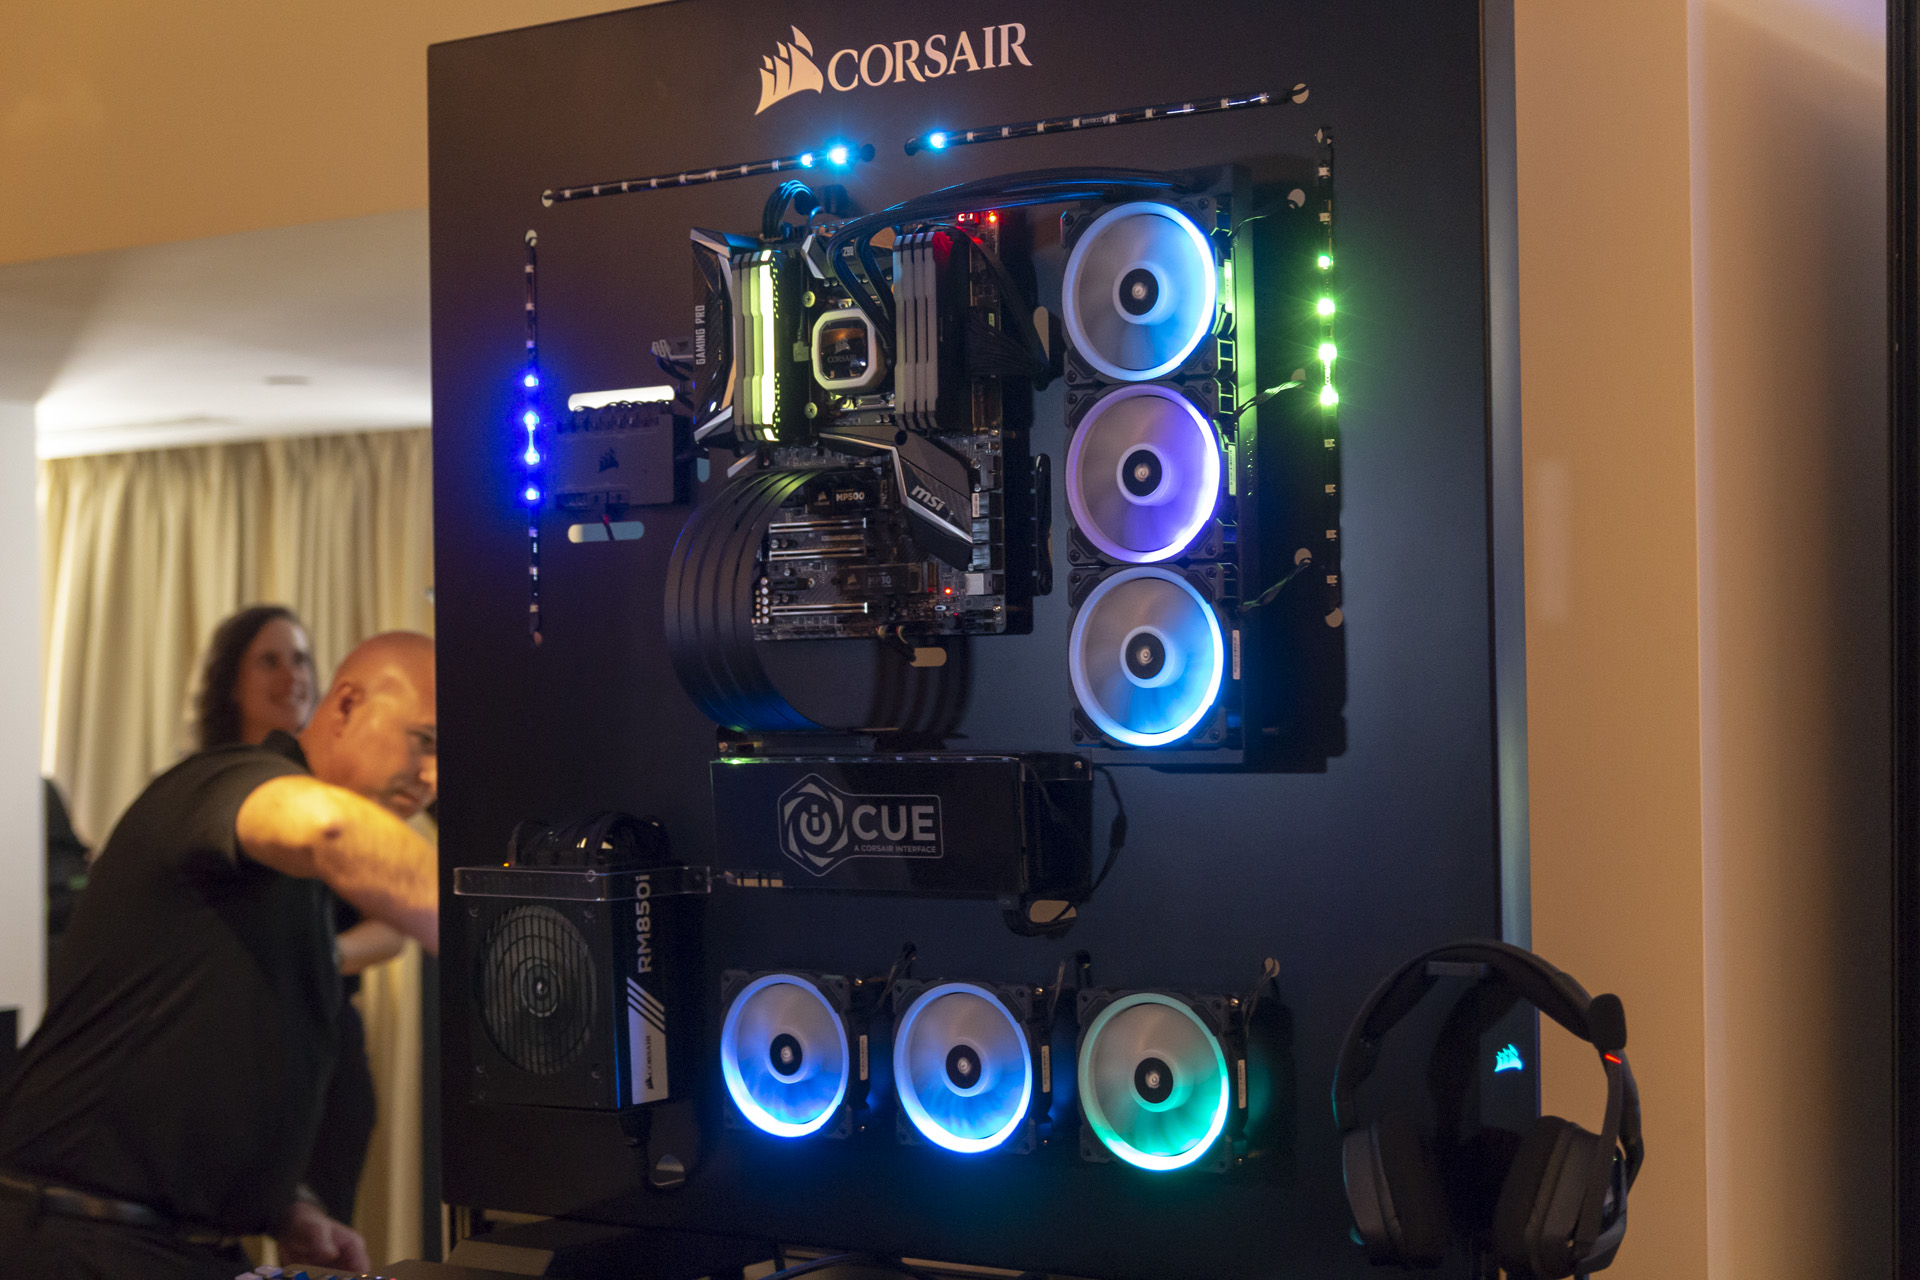 Corsair showcases iCUE software, Vengeance RGB Pro memory